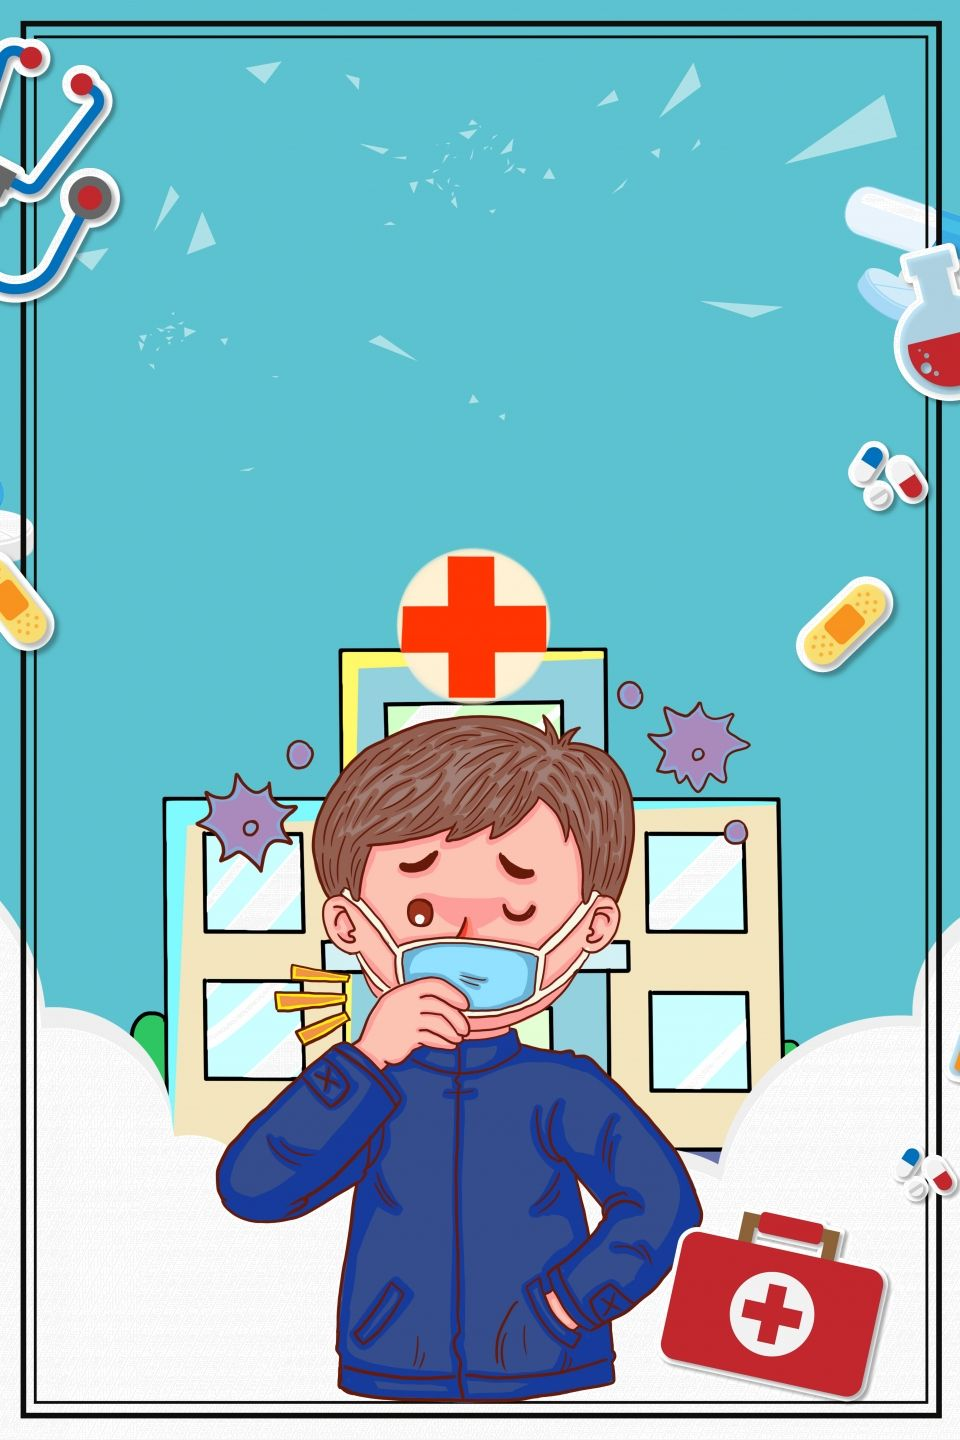 Cold Cough Hospital Culture in 2020 Hospital cartoon